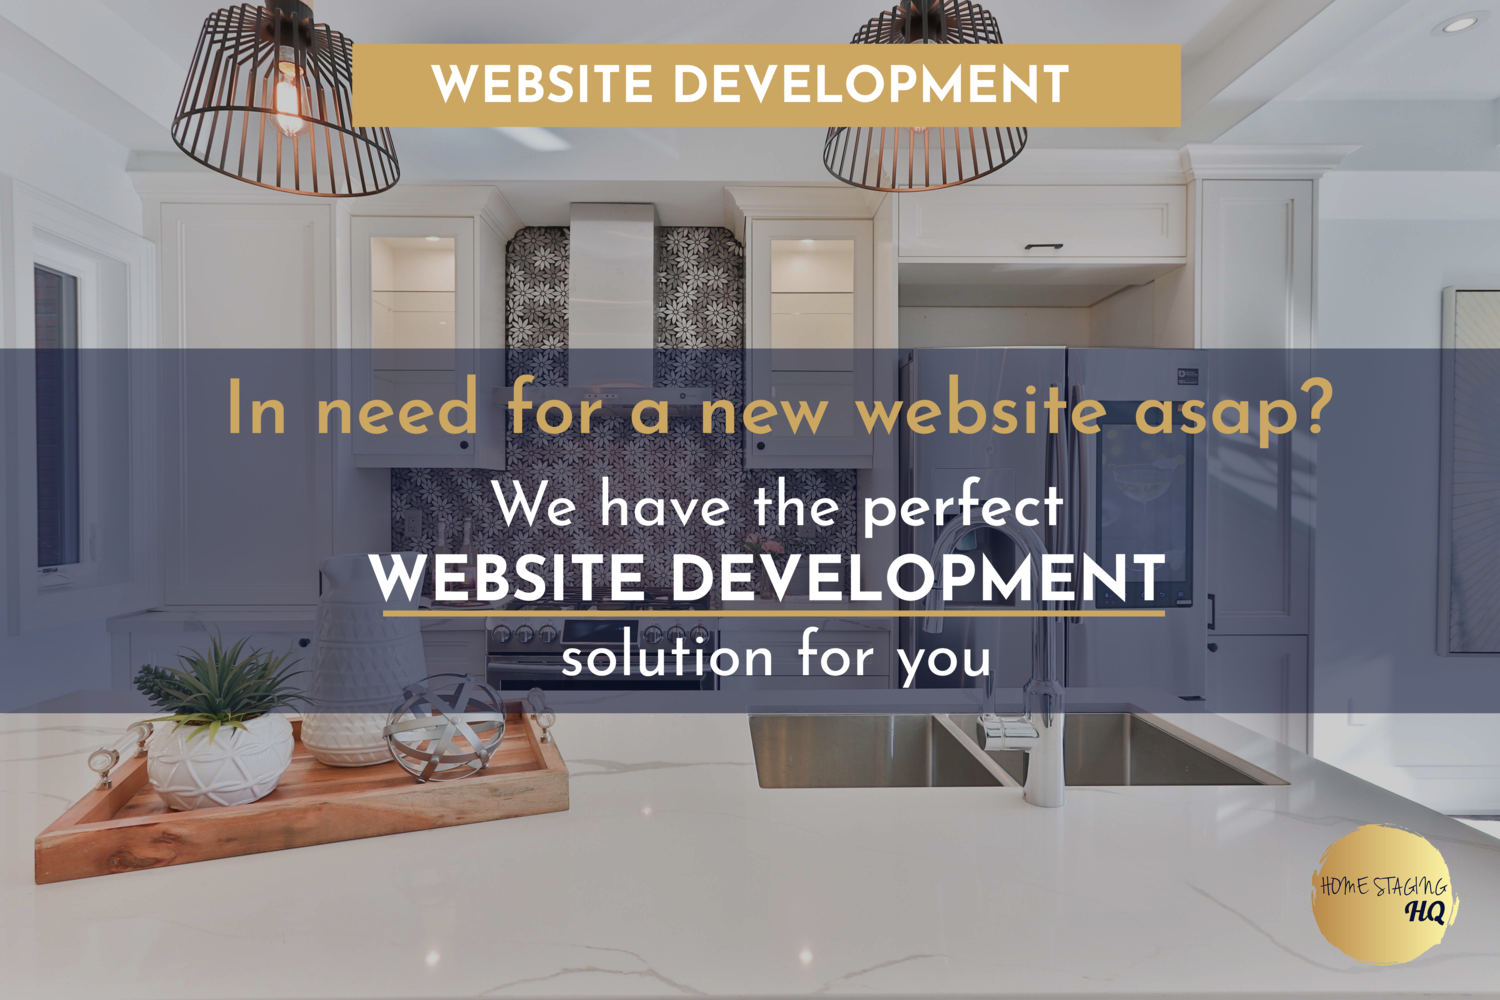 HSHQ Website Development